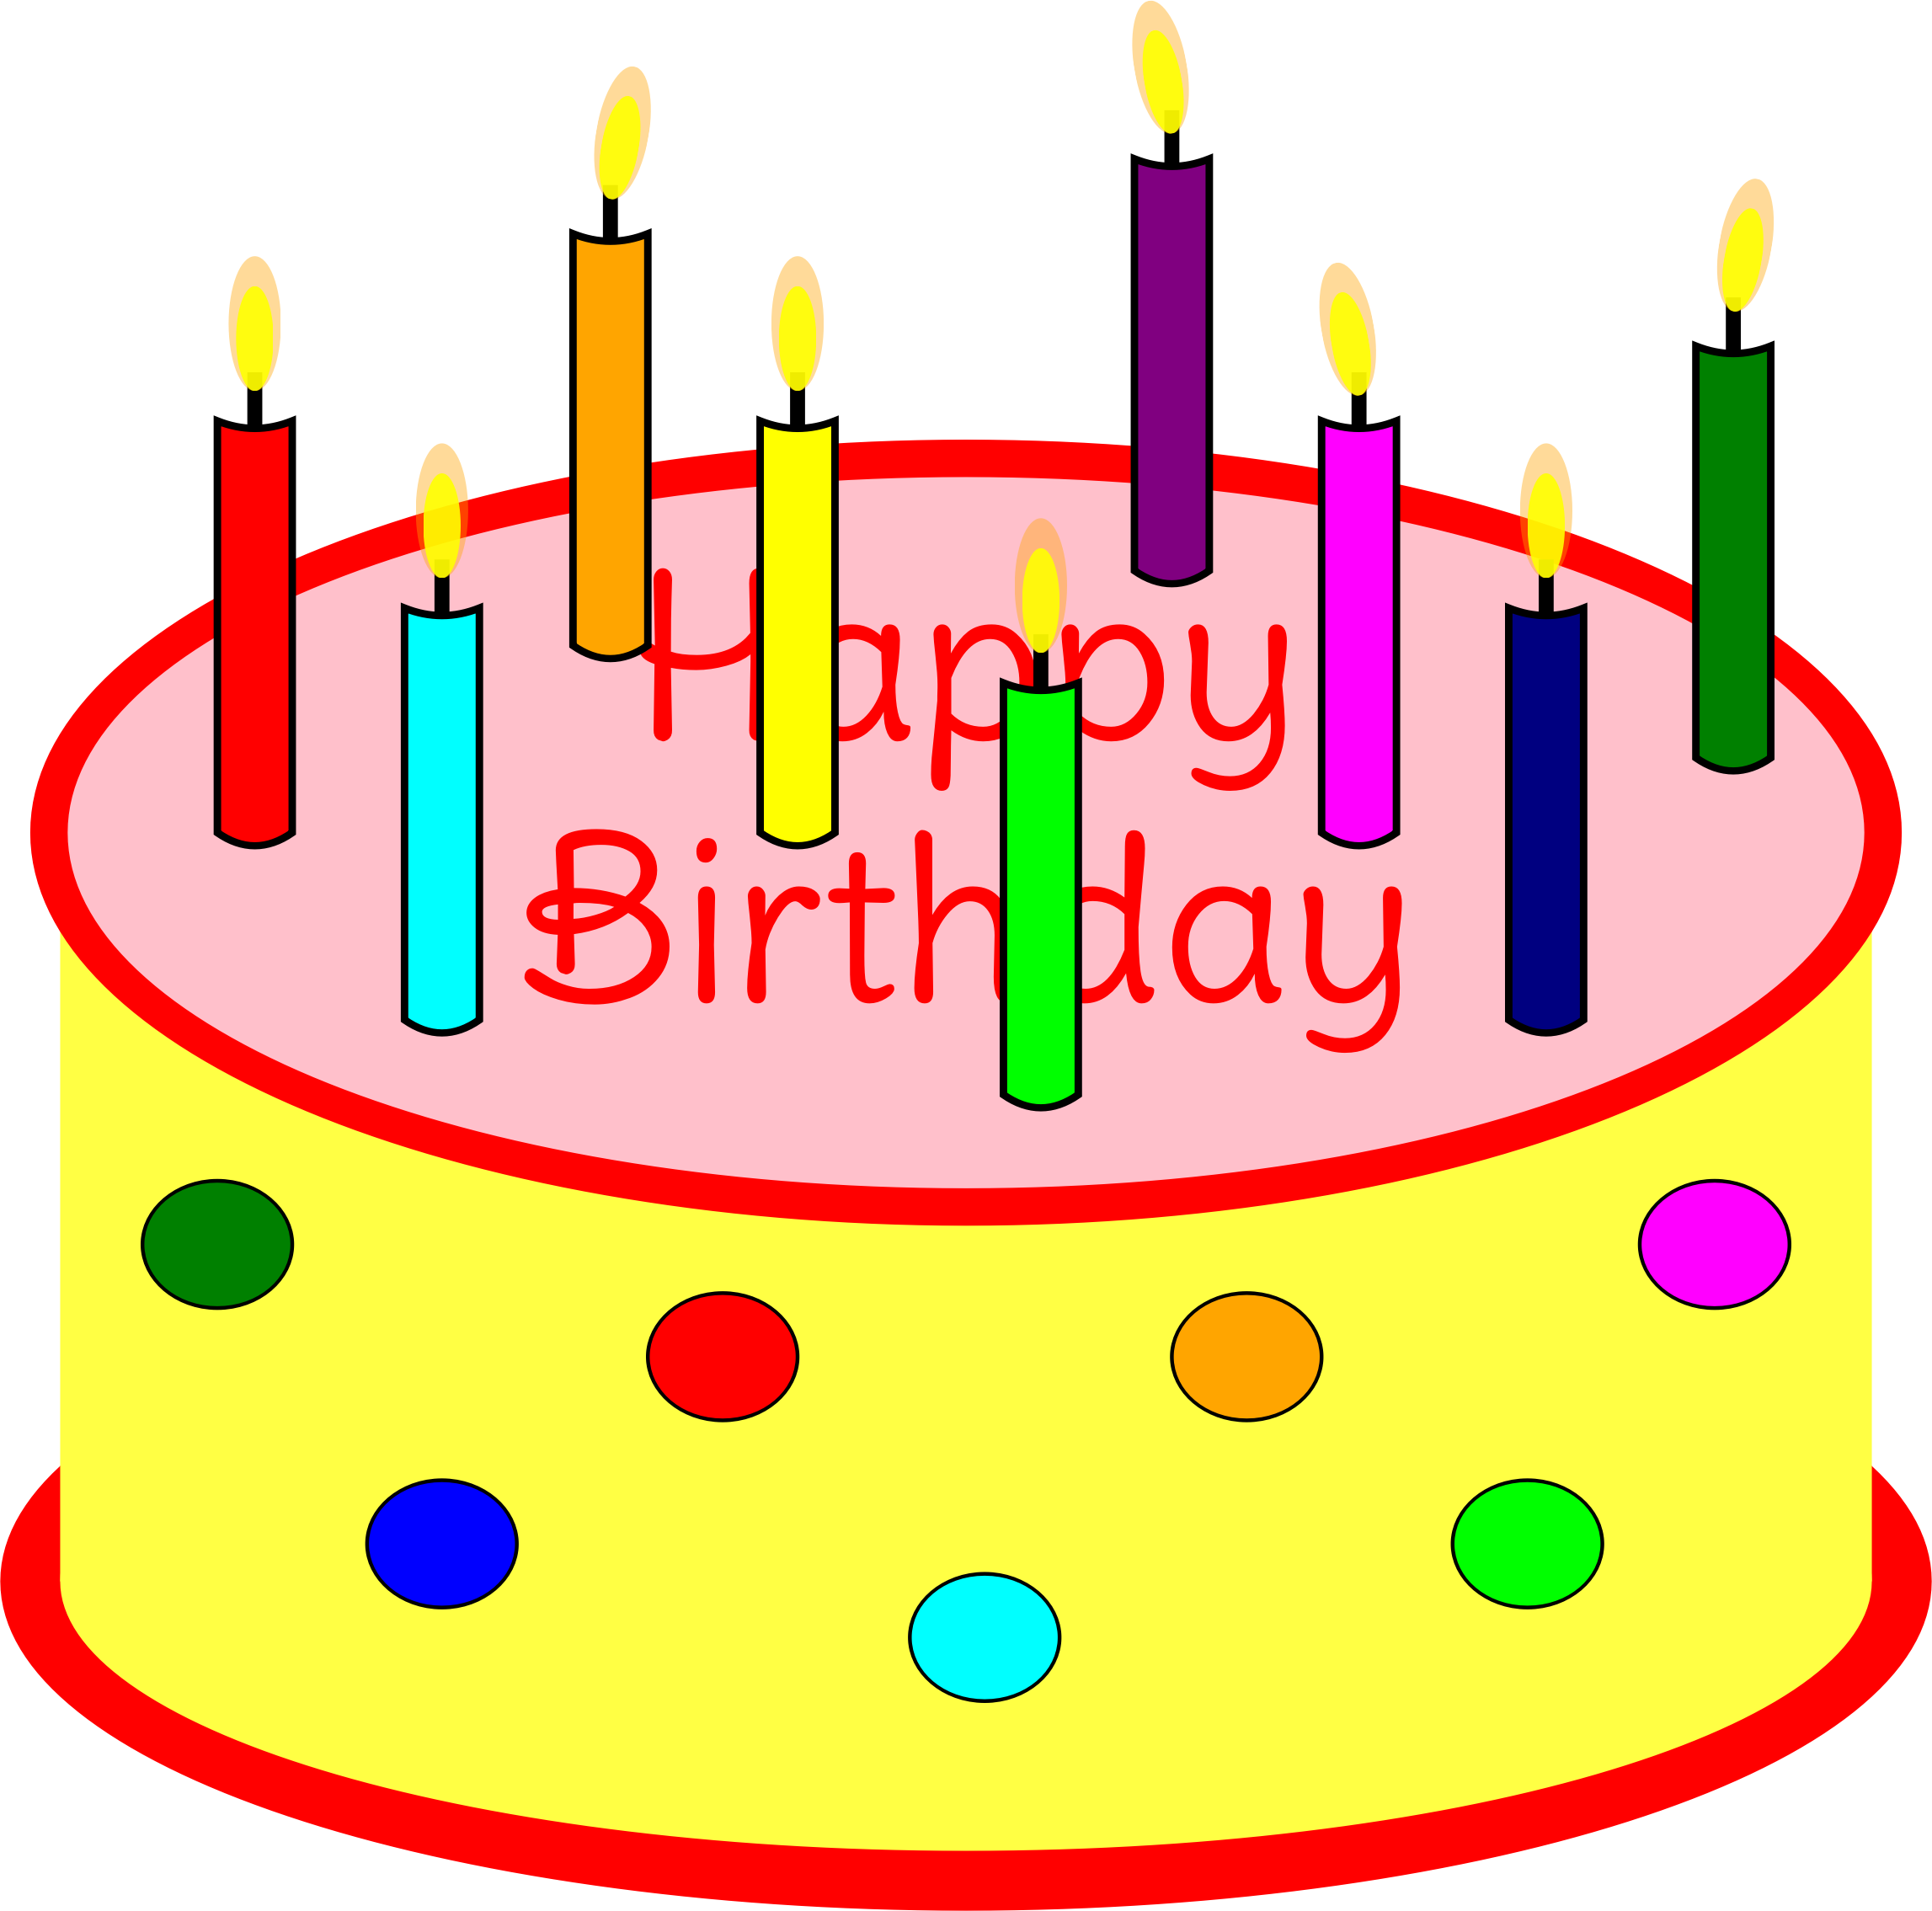 Birthday cake with candles png. Flickering candle icons free